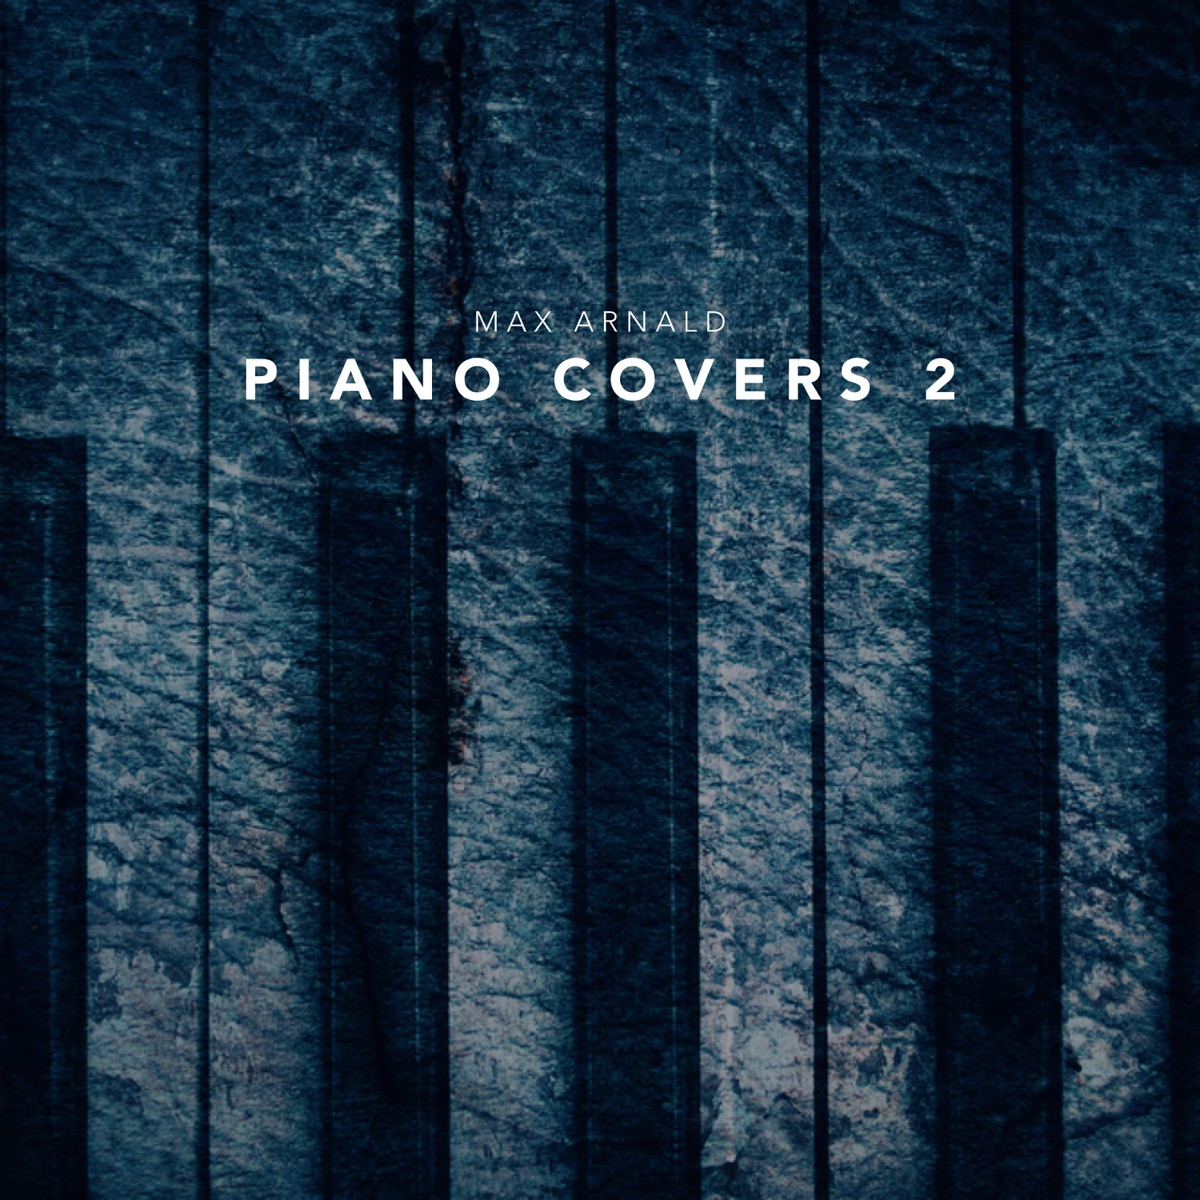 Piano Covers 2 Album Cover by Max Arnald